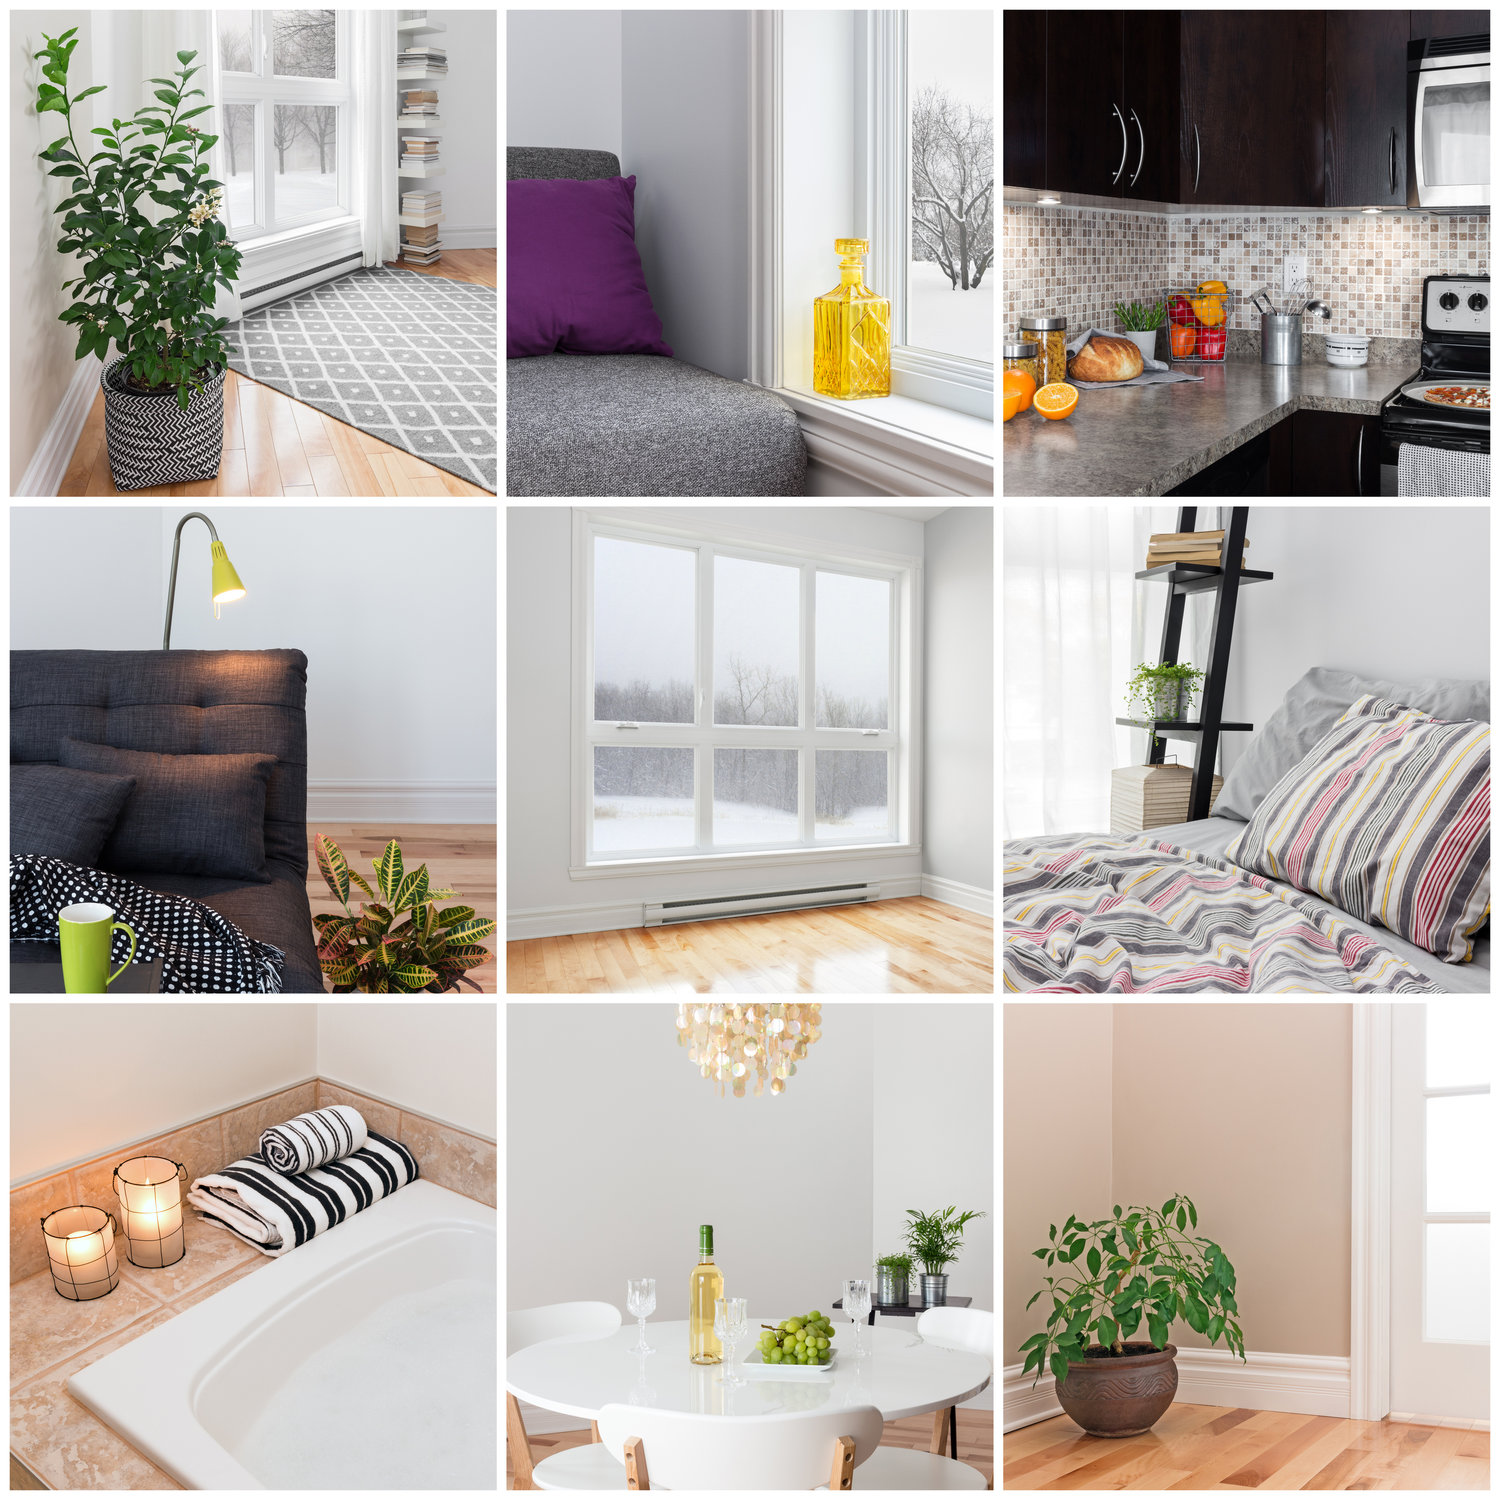 home cleaning services white glove cleaning services llc